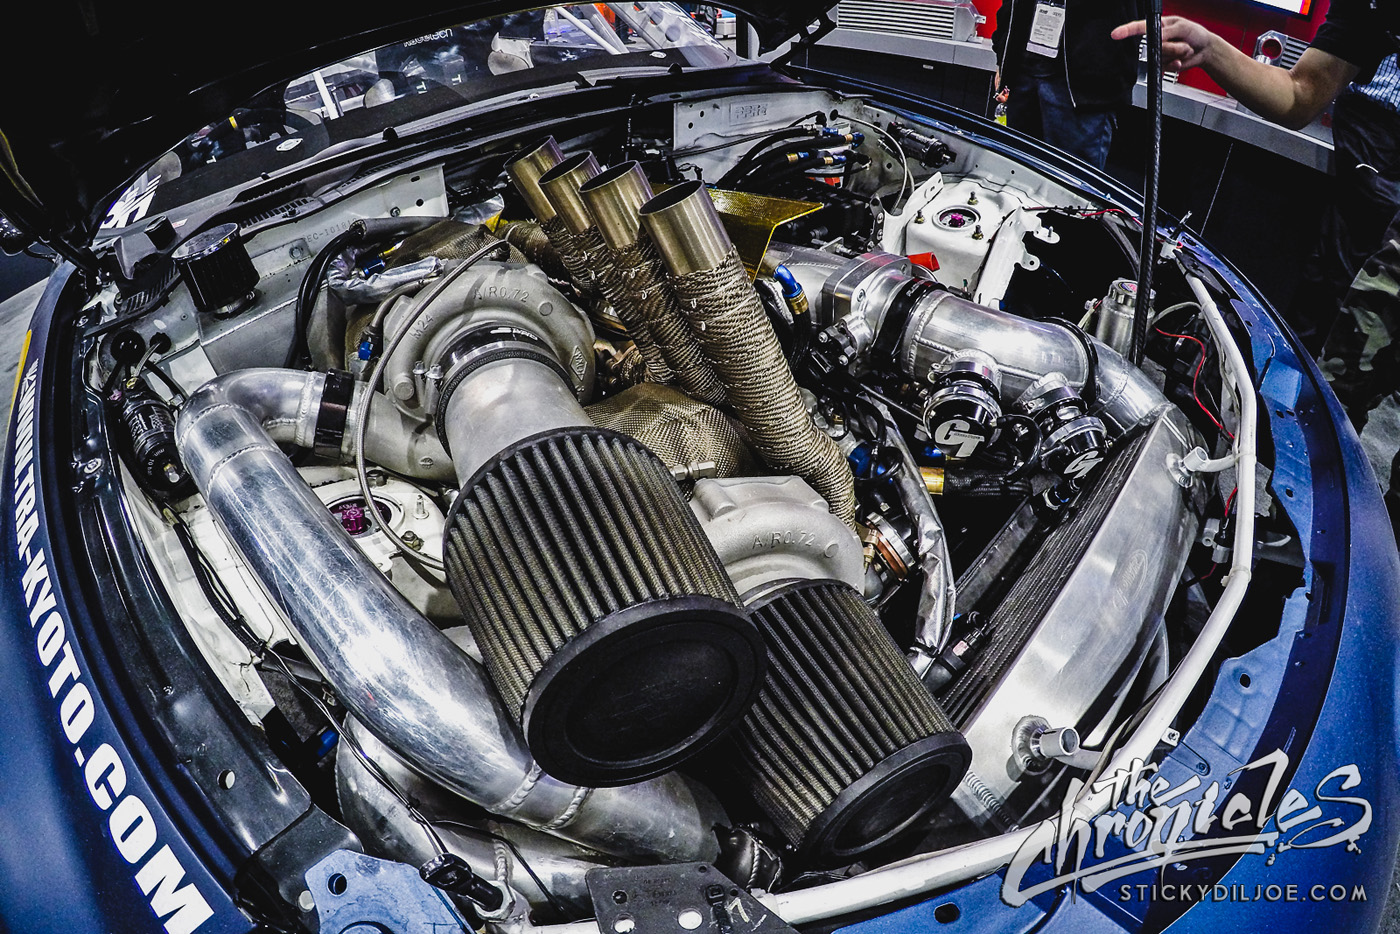 The Chronicles Vlog #17 (Part 4): Day 3 and 4 of SEMA 2015…